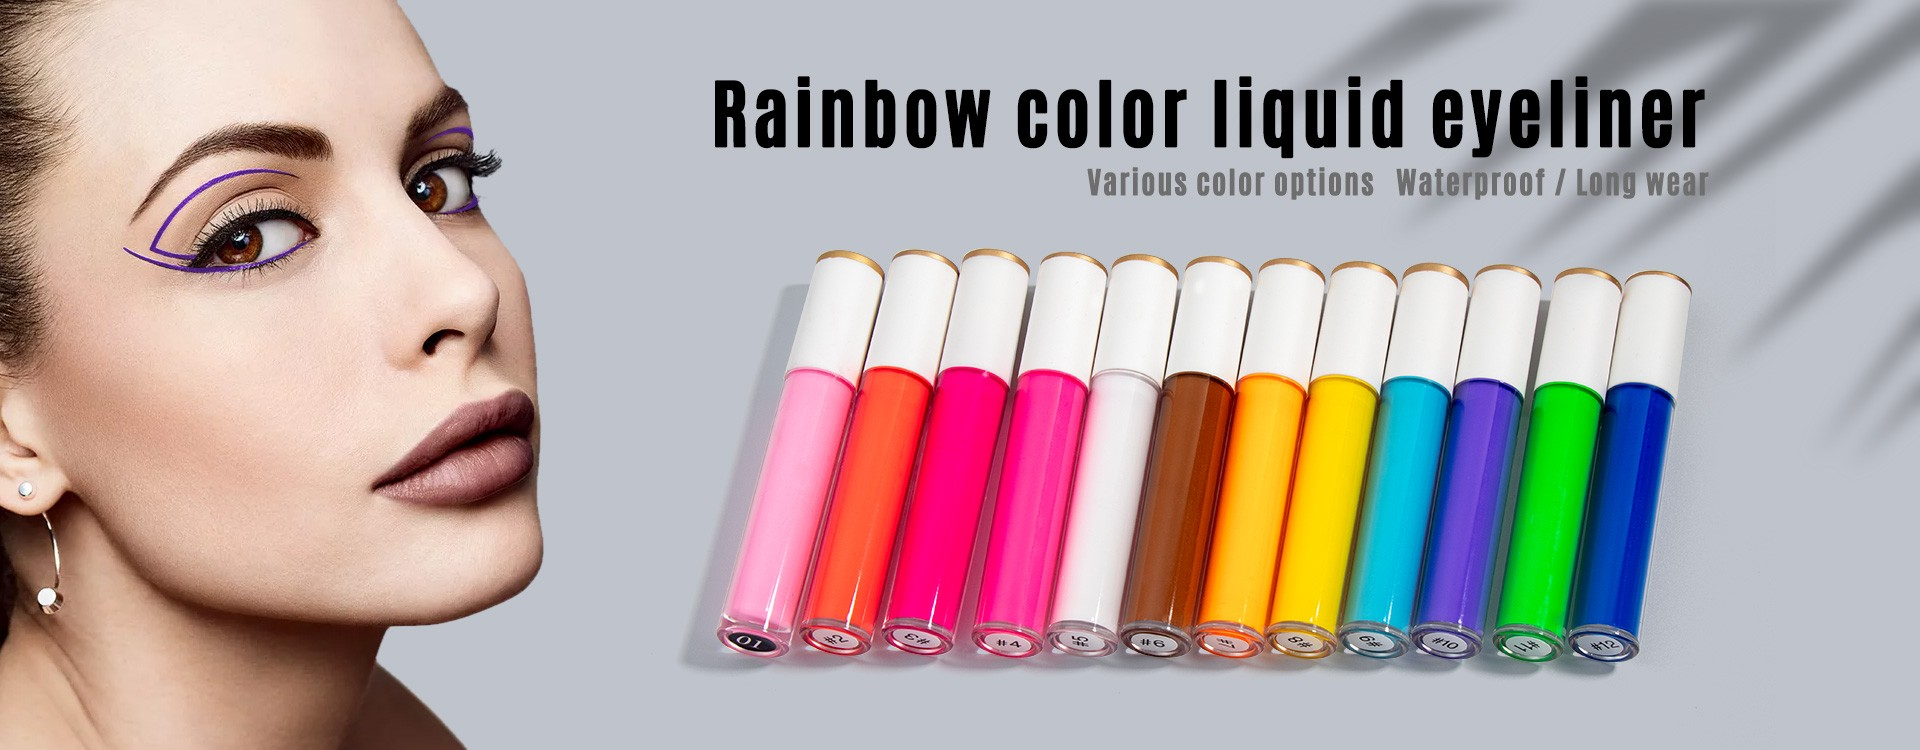 Rainbow color liquid eyeliner